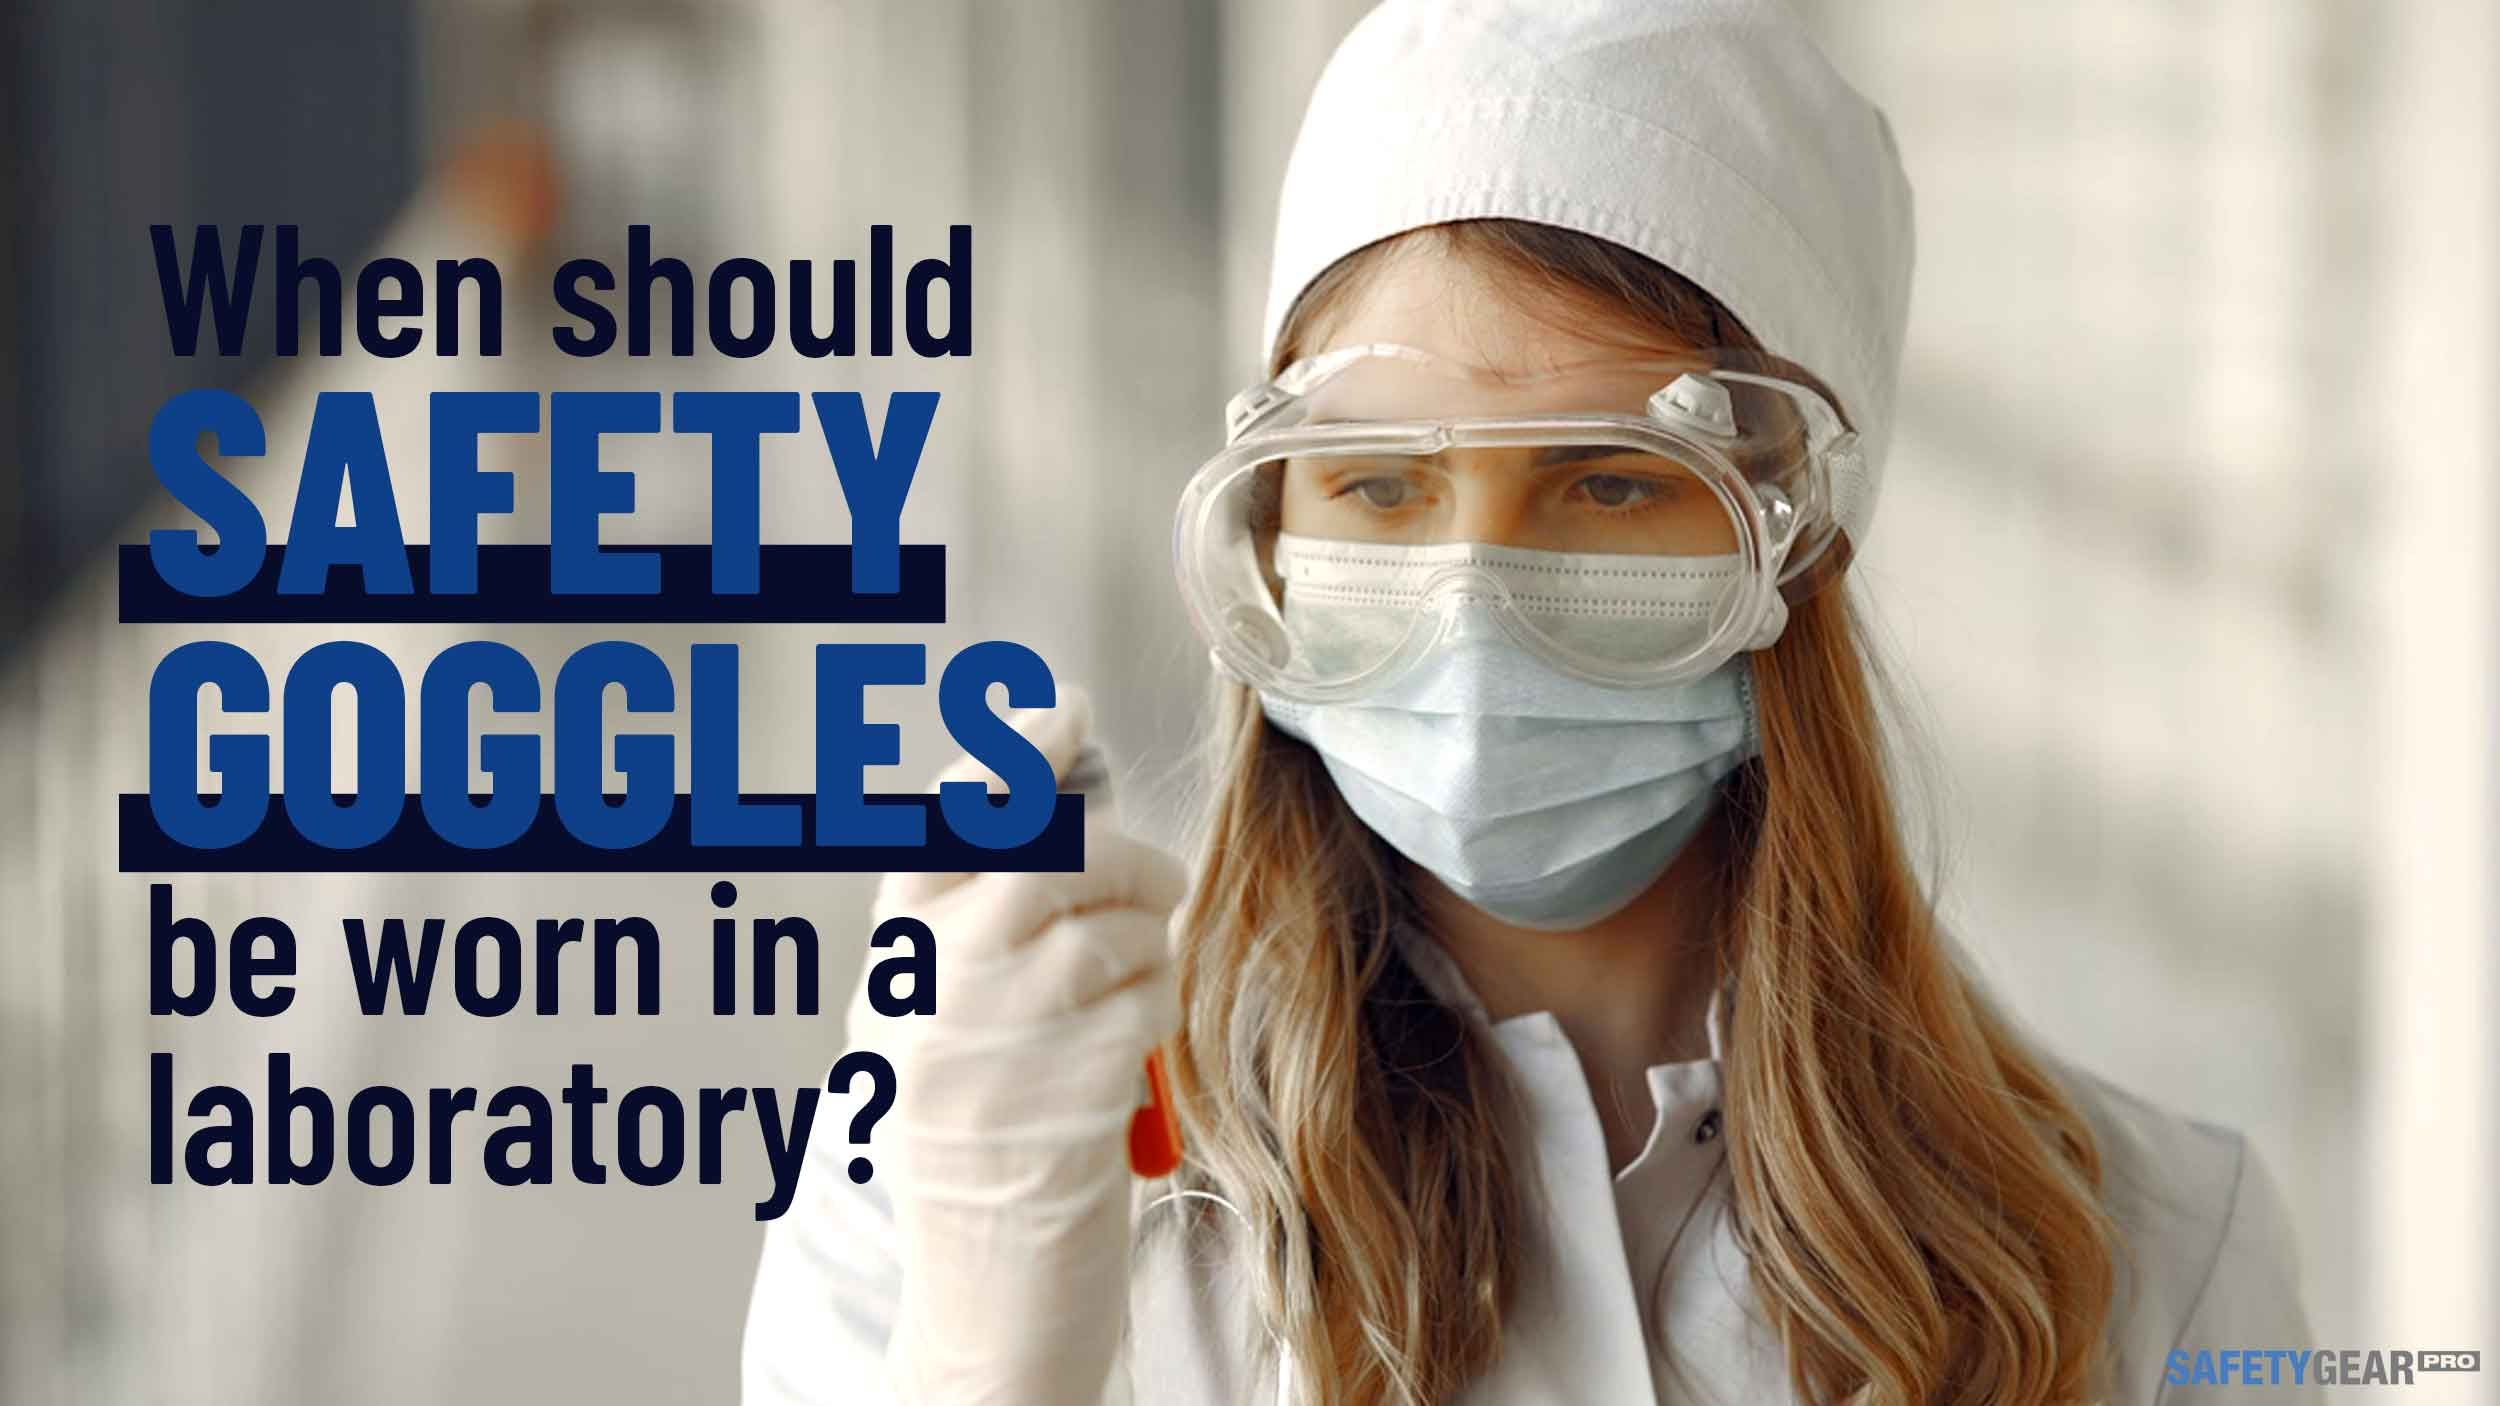 When Should Safety Goggles Be Worn in a Laboratory?